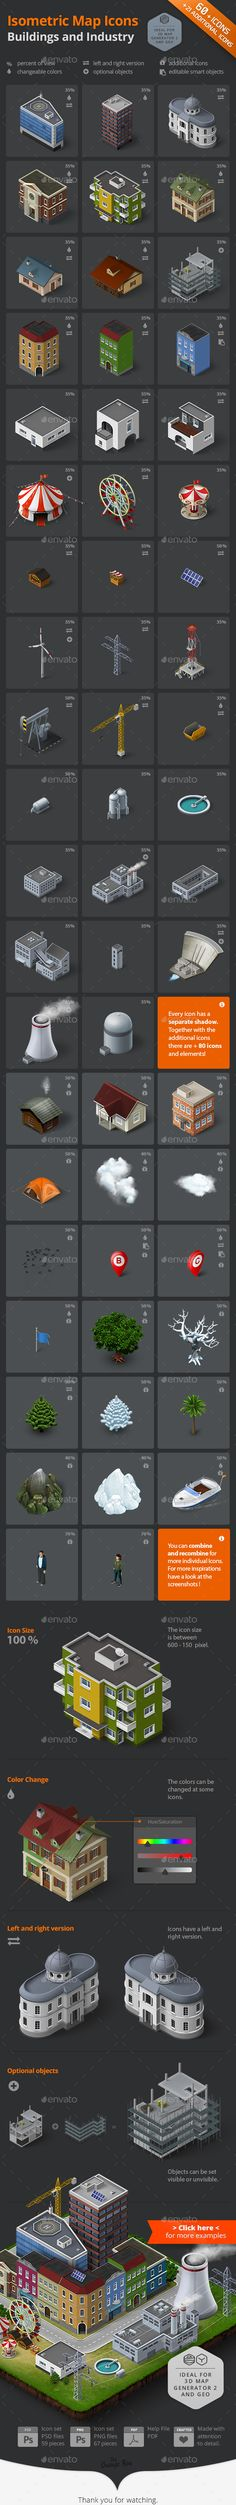 Isometric Map Icons - Buildings and Industry #design Download: http://graphicriver.net/item/isometric-map-icons-buildings-and-industry/13650864?ref=ksioks